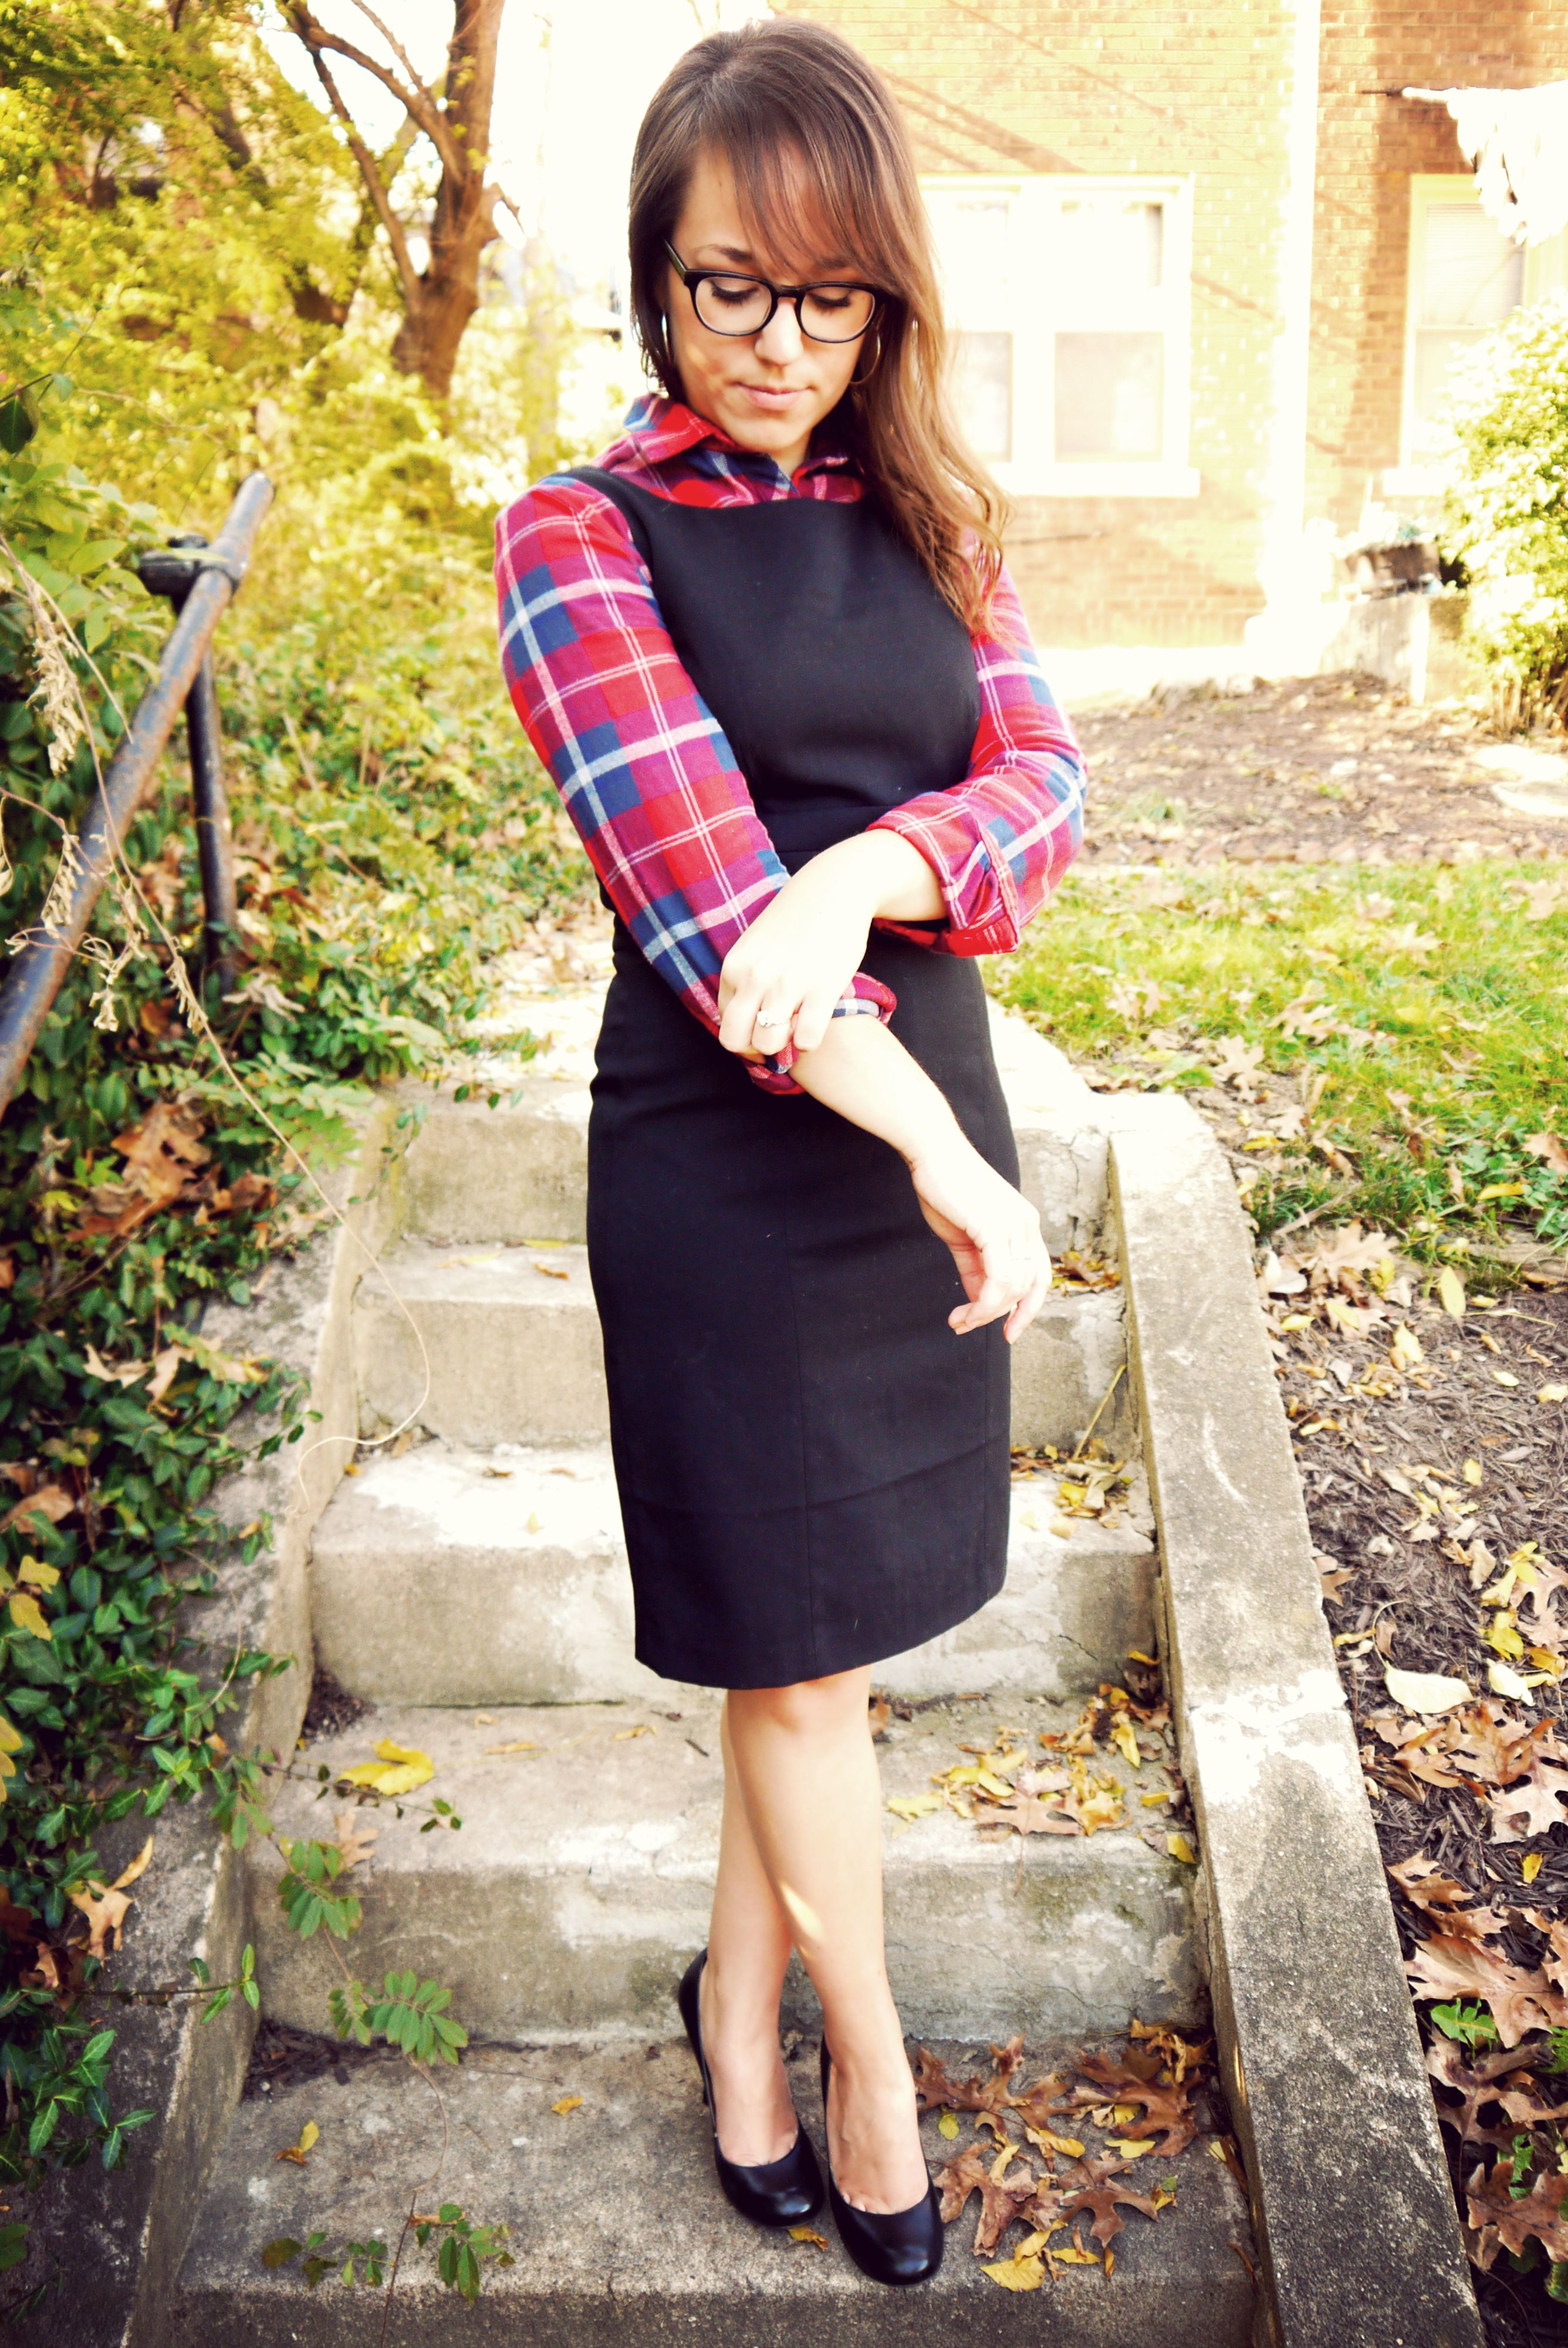 Flannel with shirt underneath  Flannel  Ways  Fit for the Office  Pinterest  Classic black